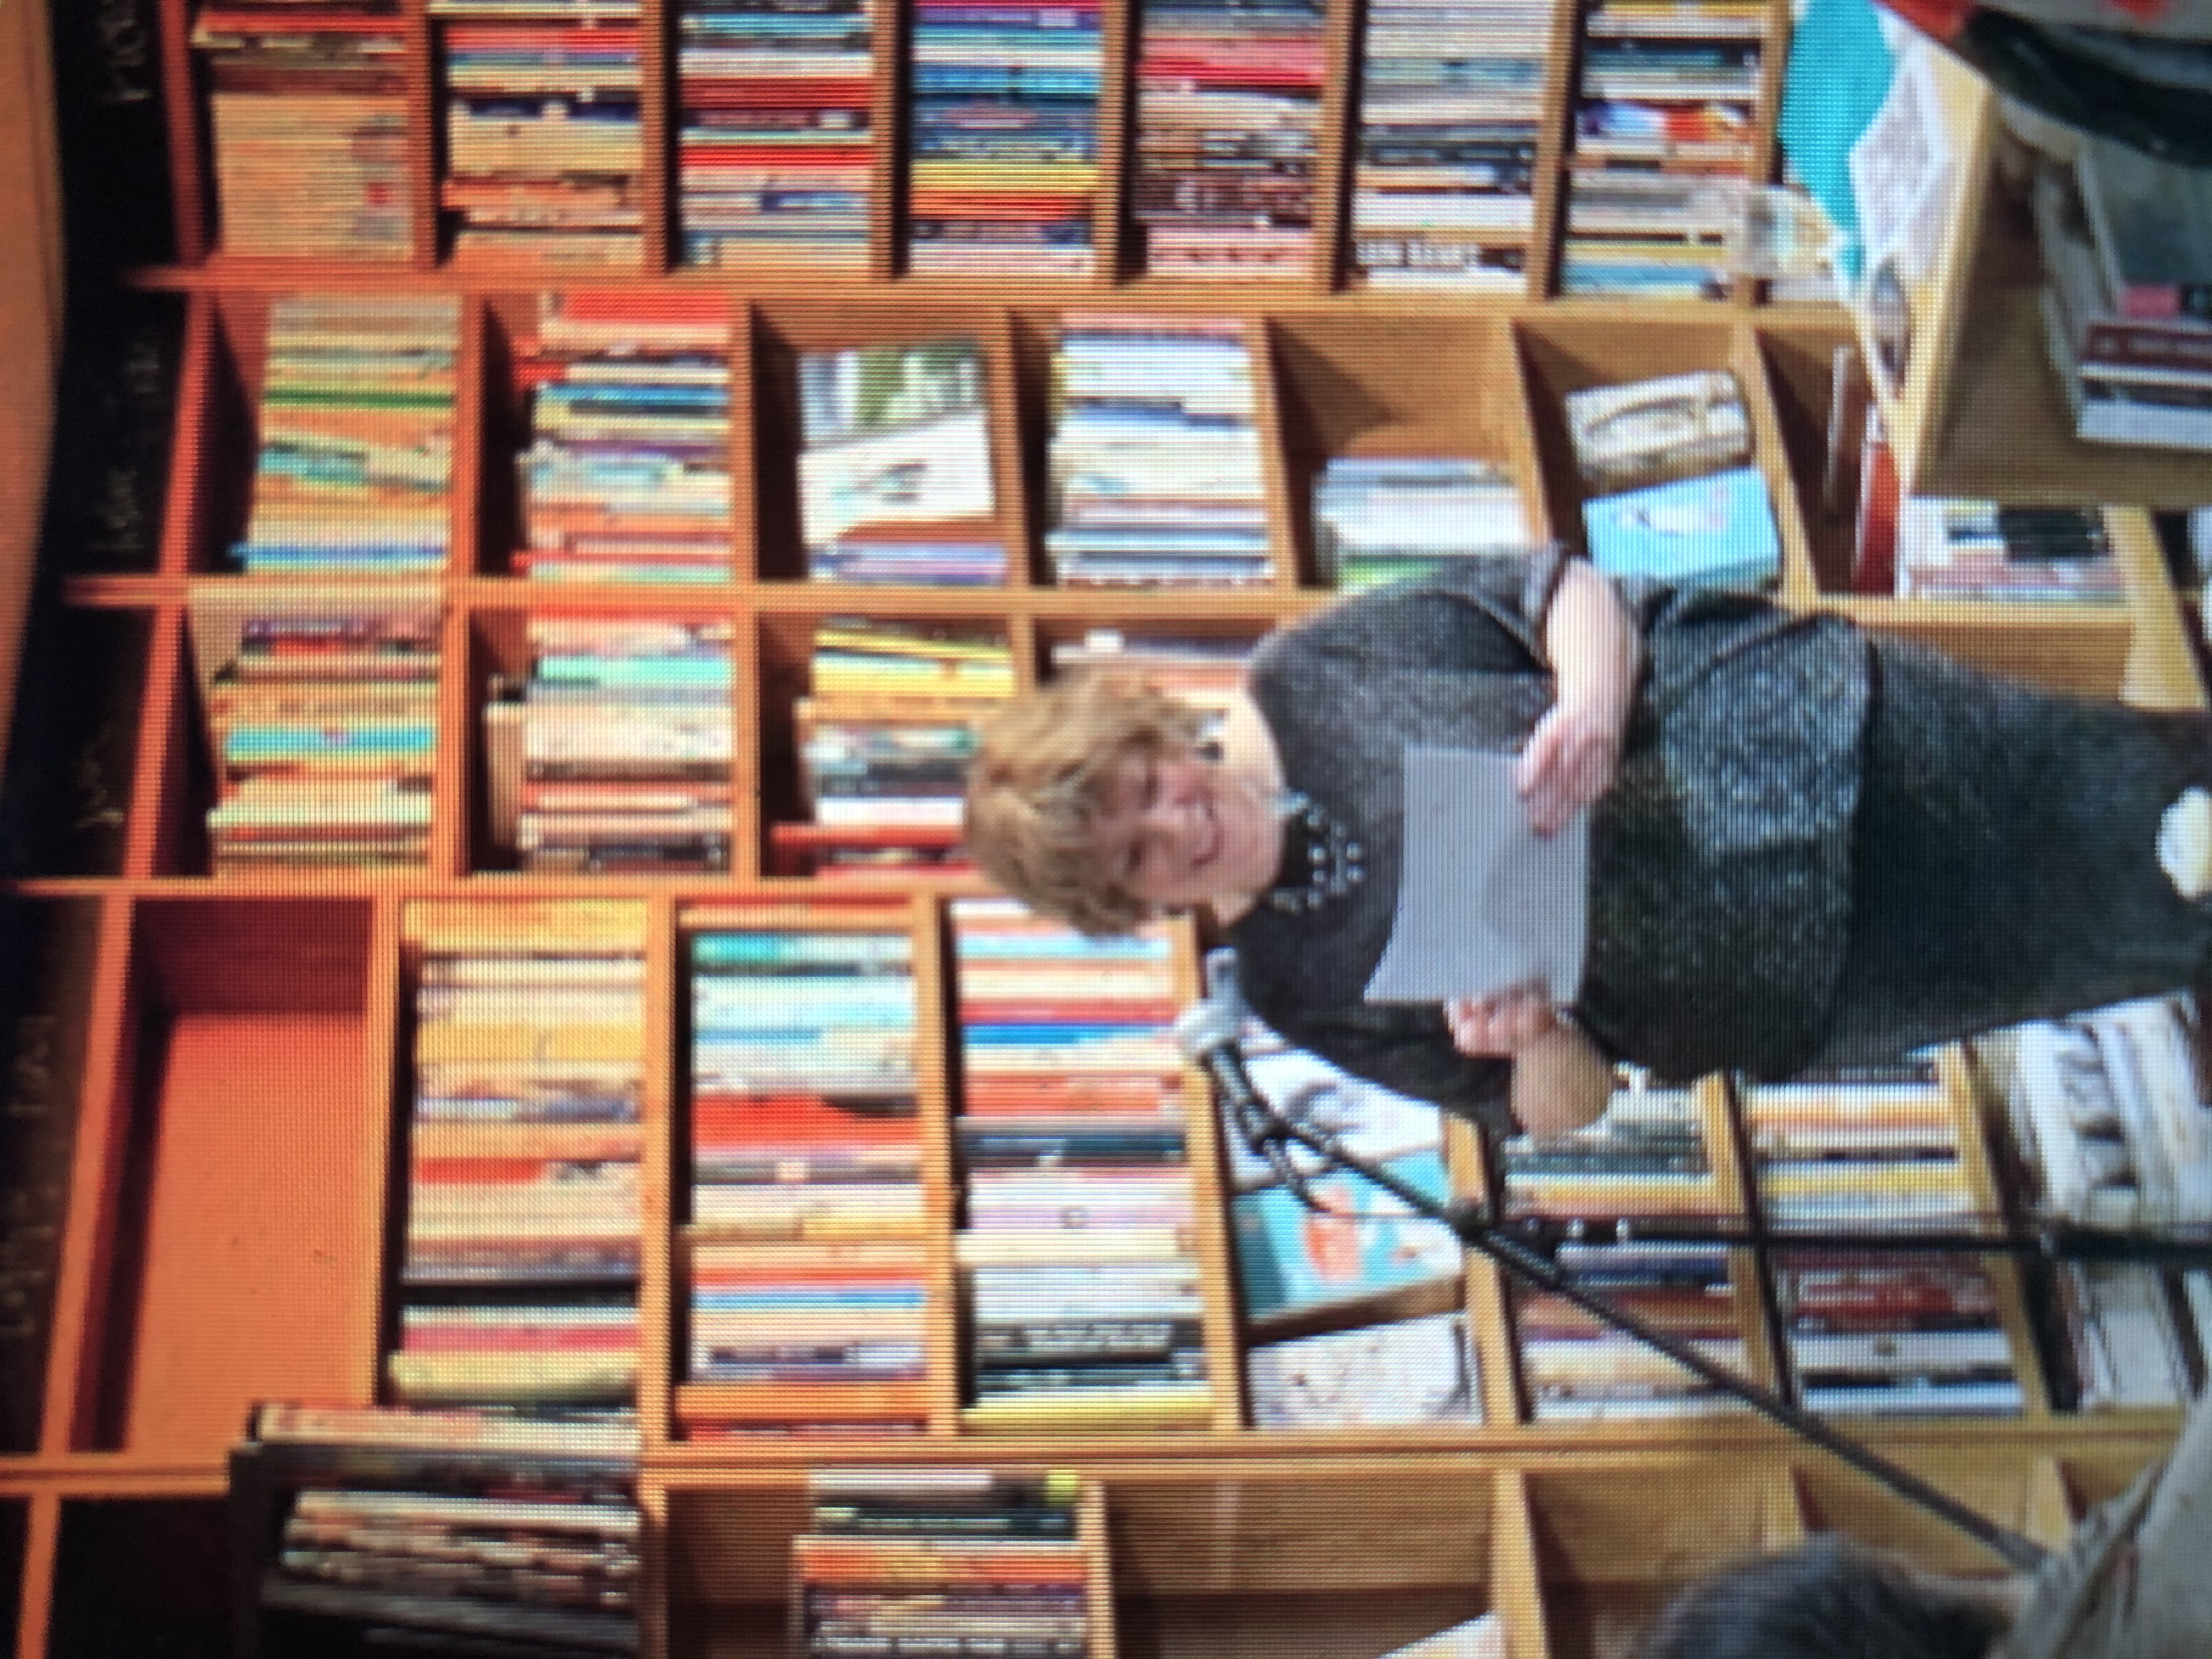 Anne Coates speaking at event in a bookshop